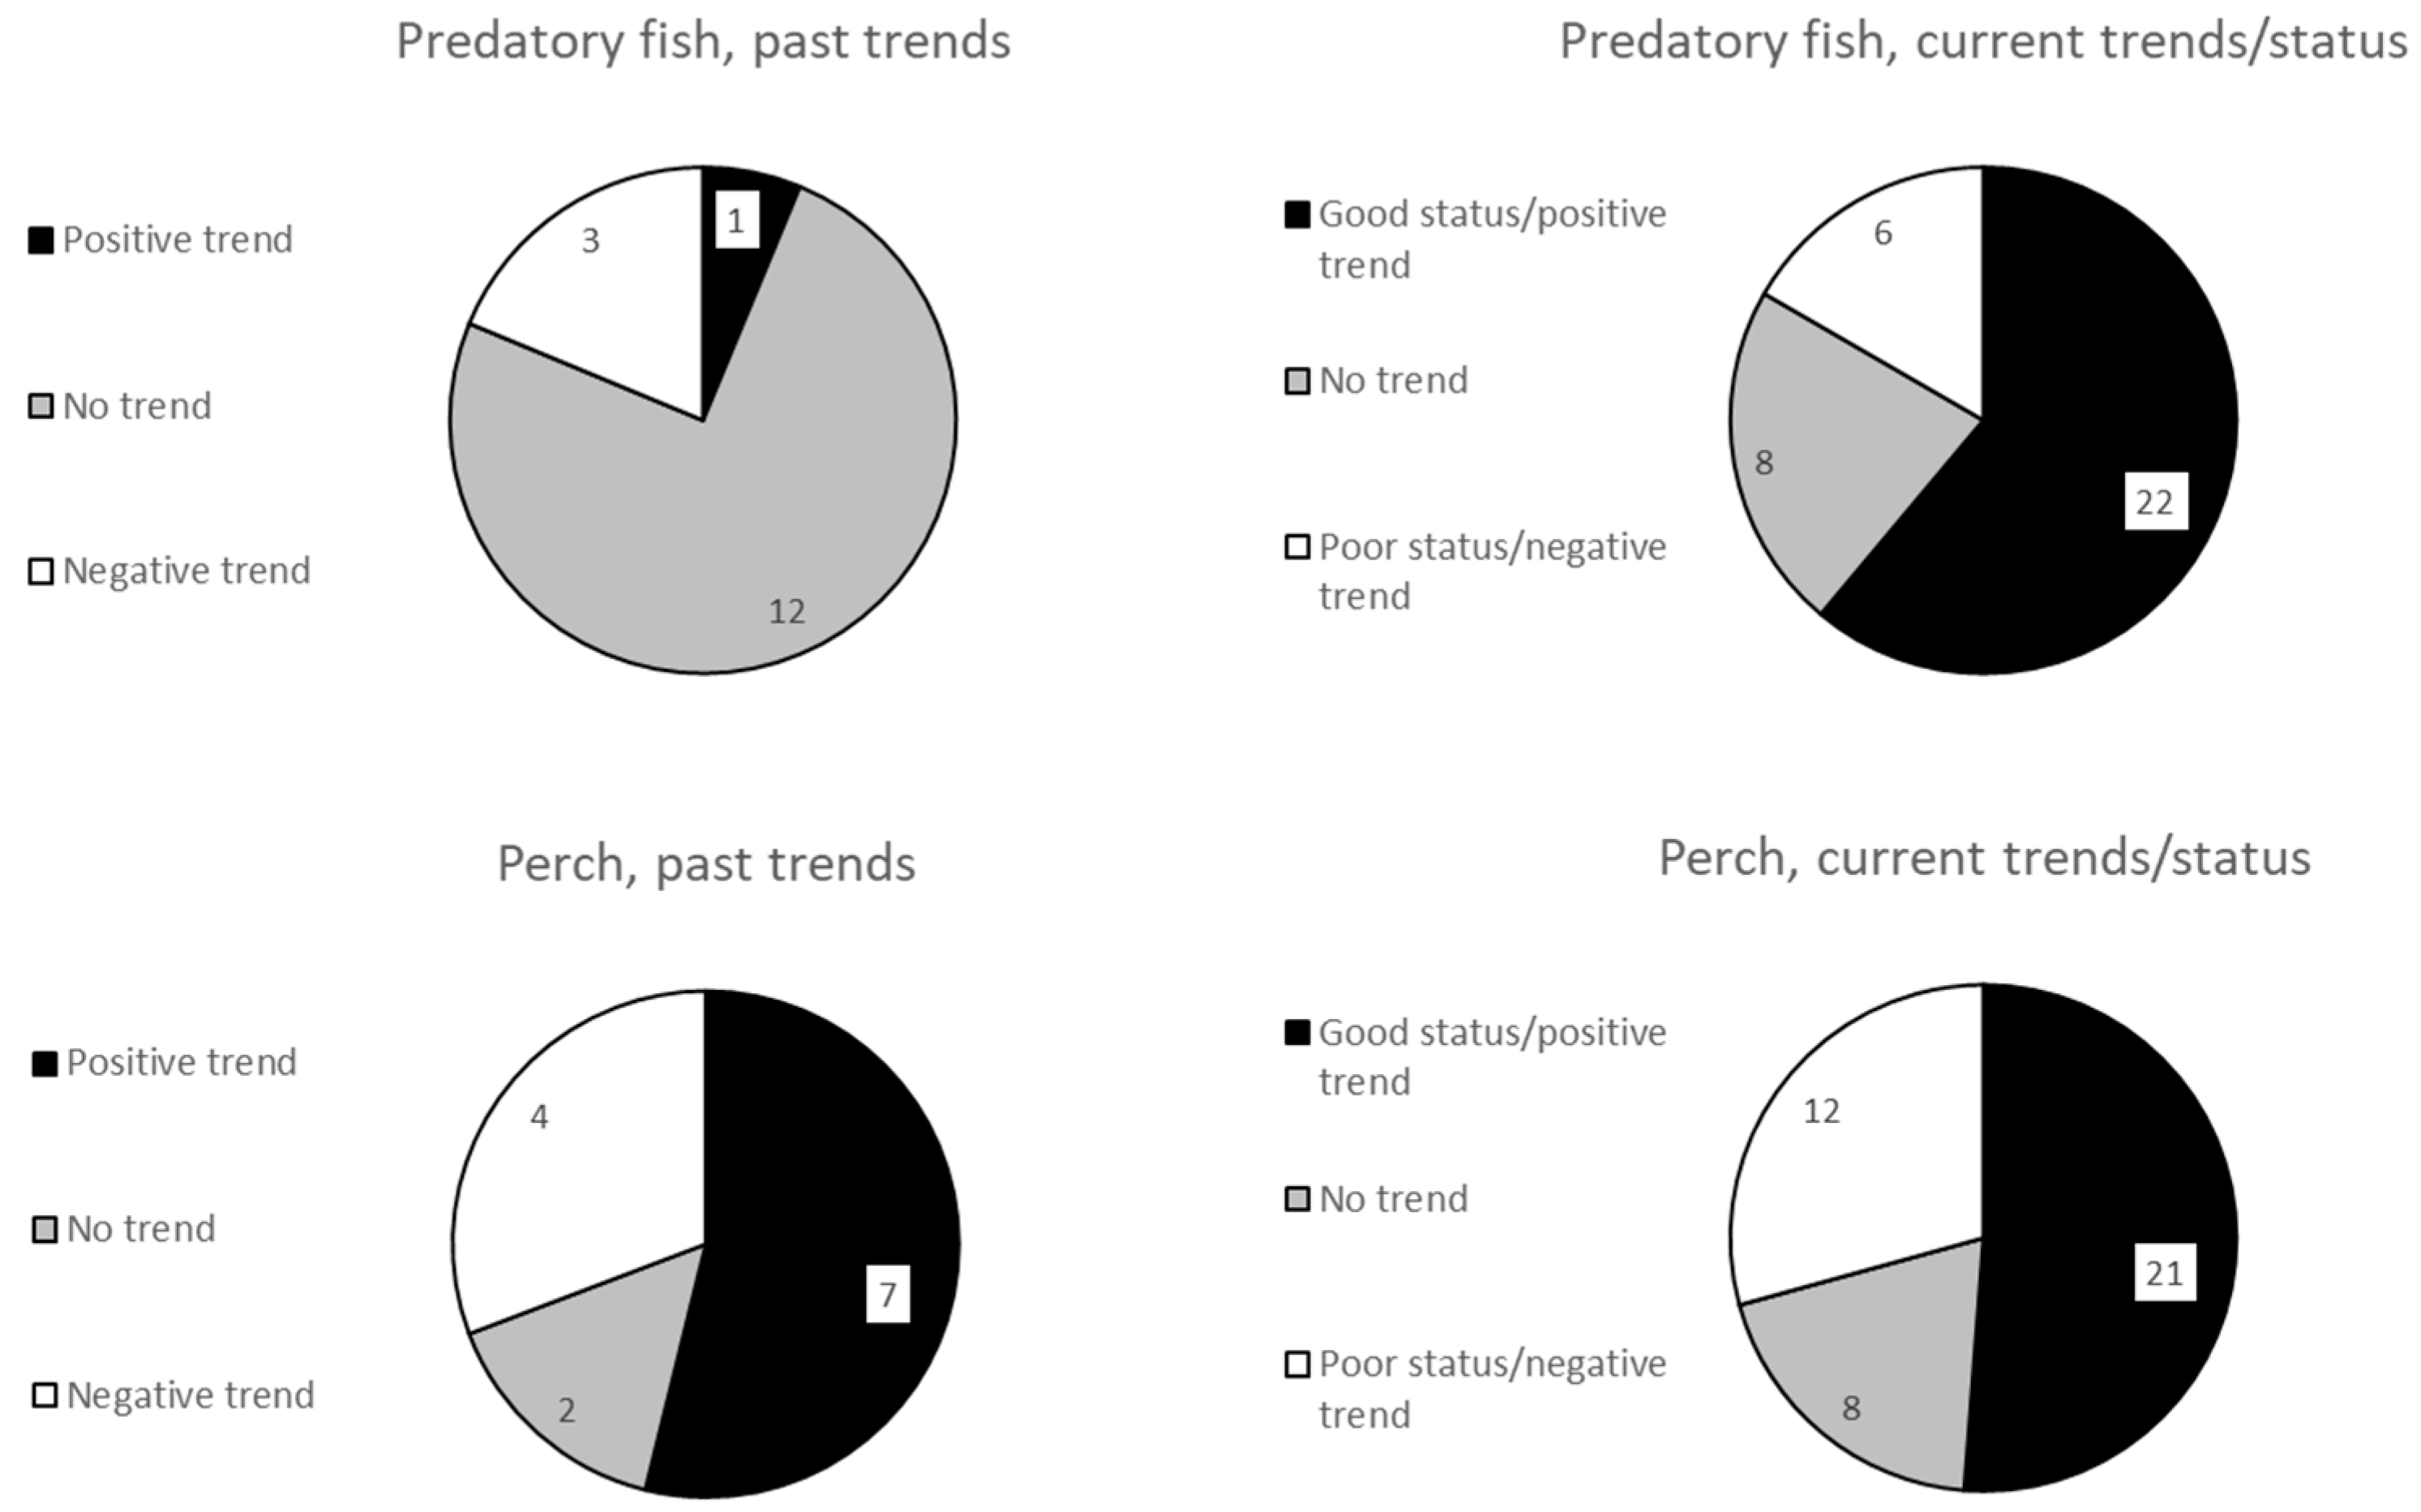 Fishes | Free Full-Text | Past and Current Trends of Coastal